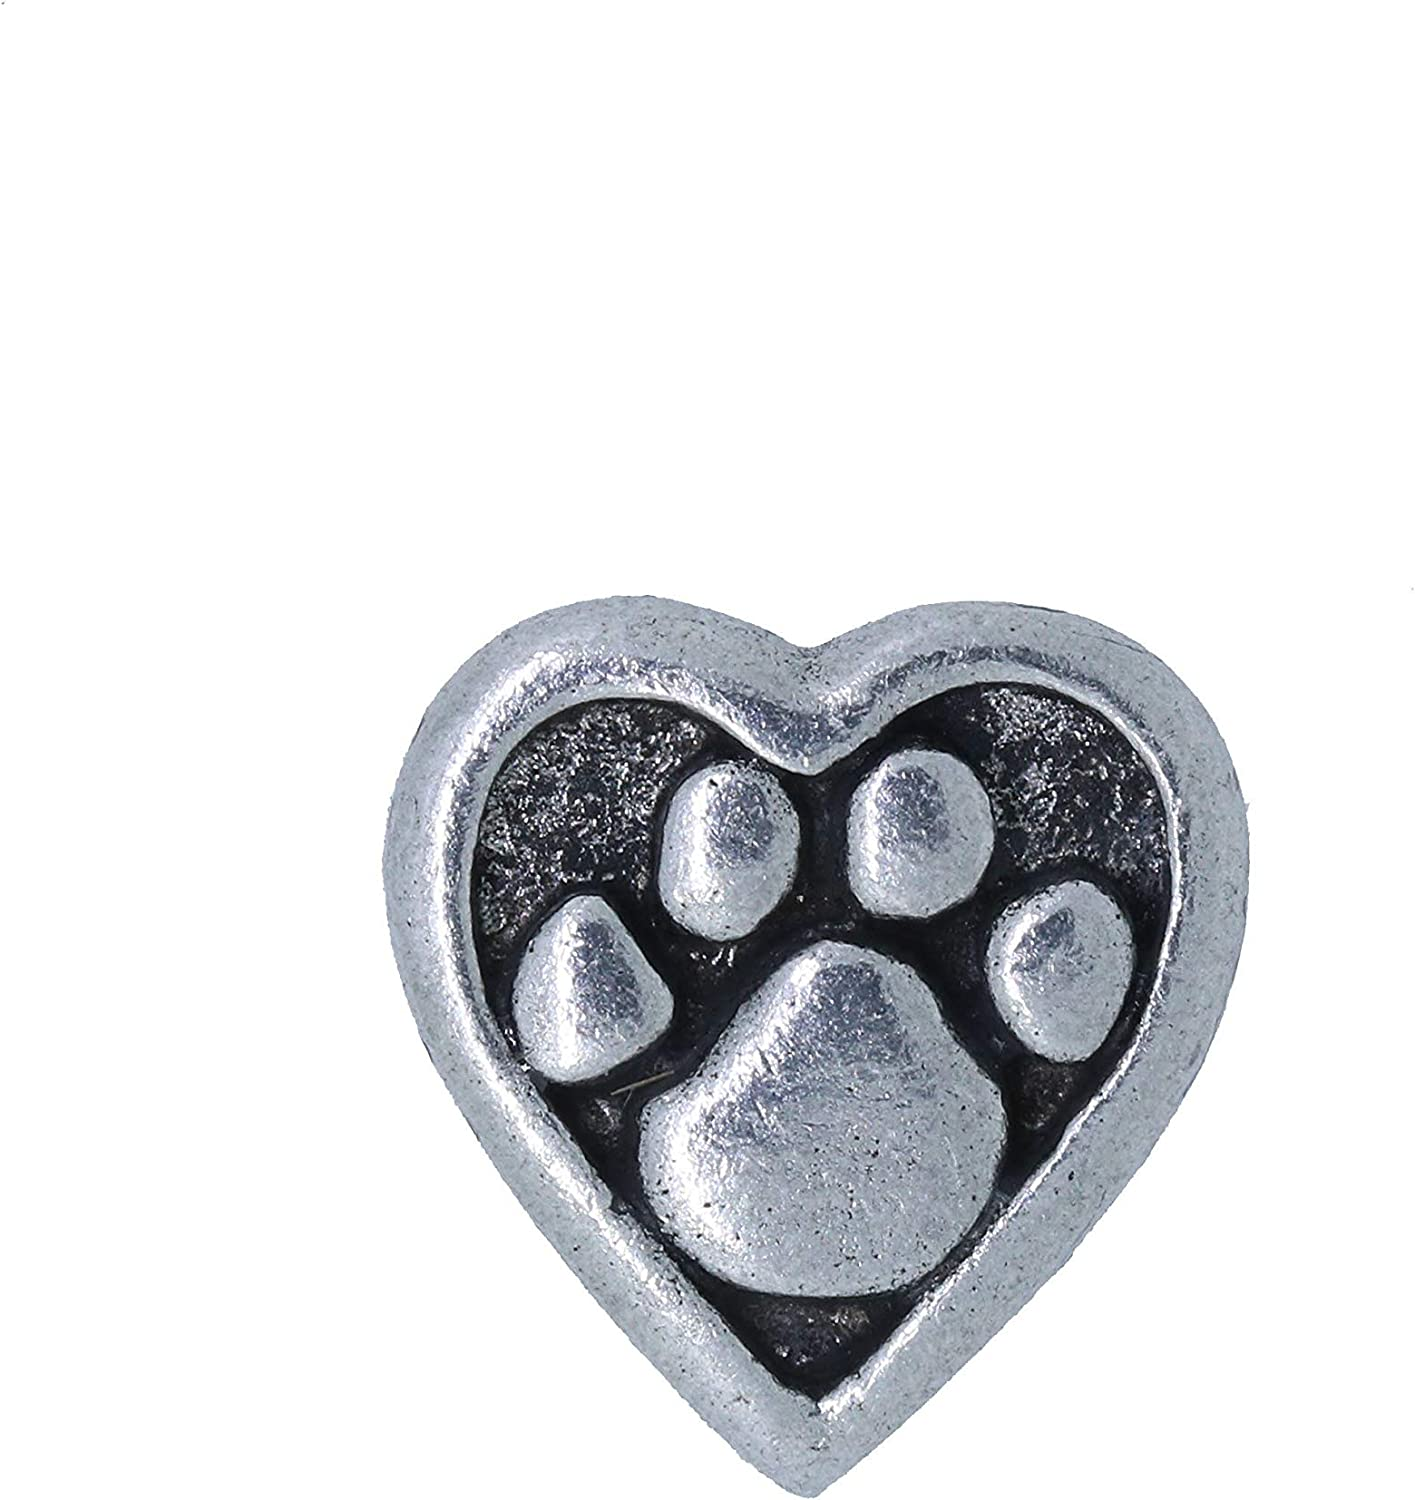 Jim Clift Design Heart and Paw Lapel Pin